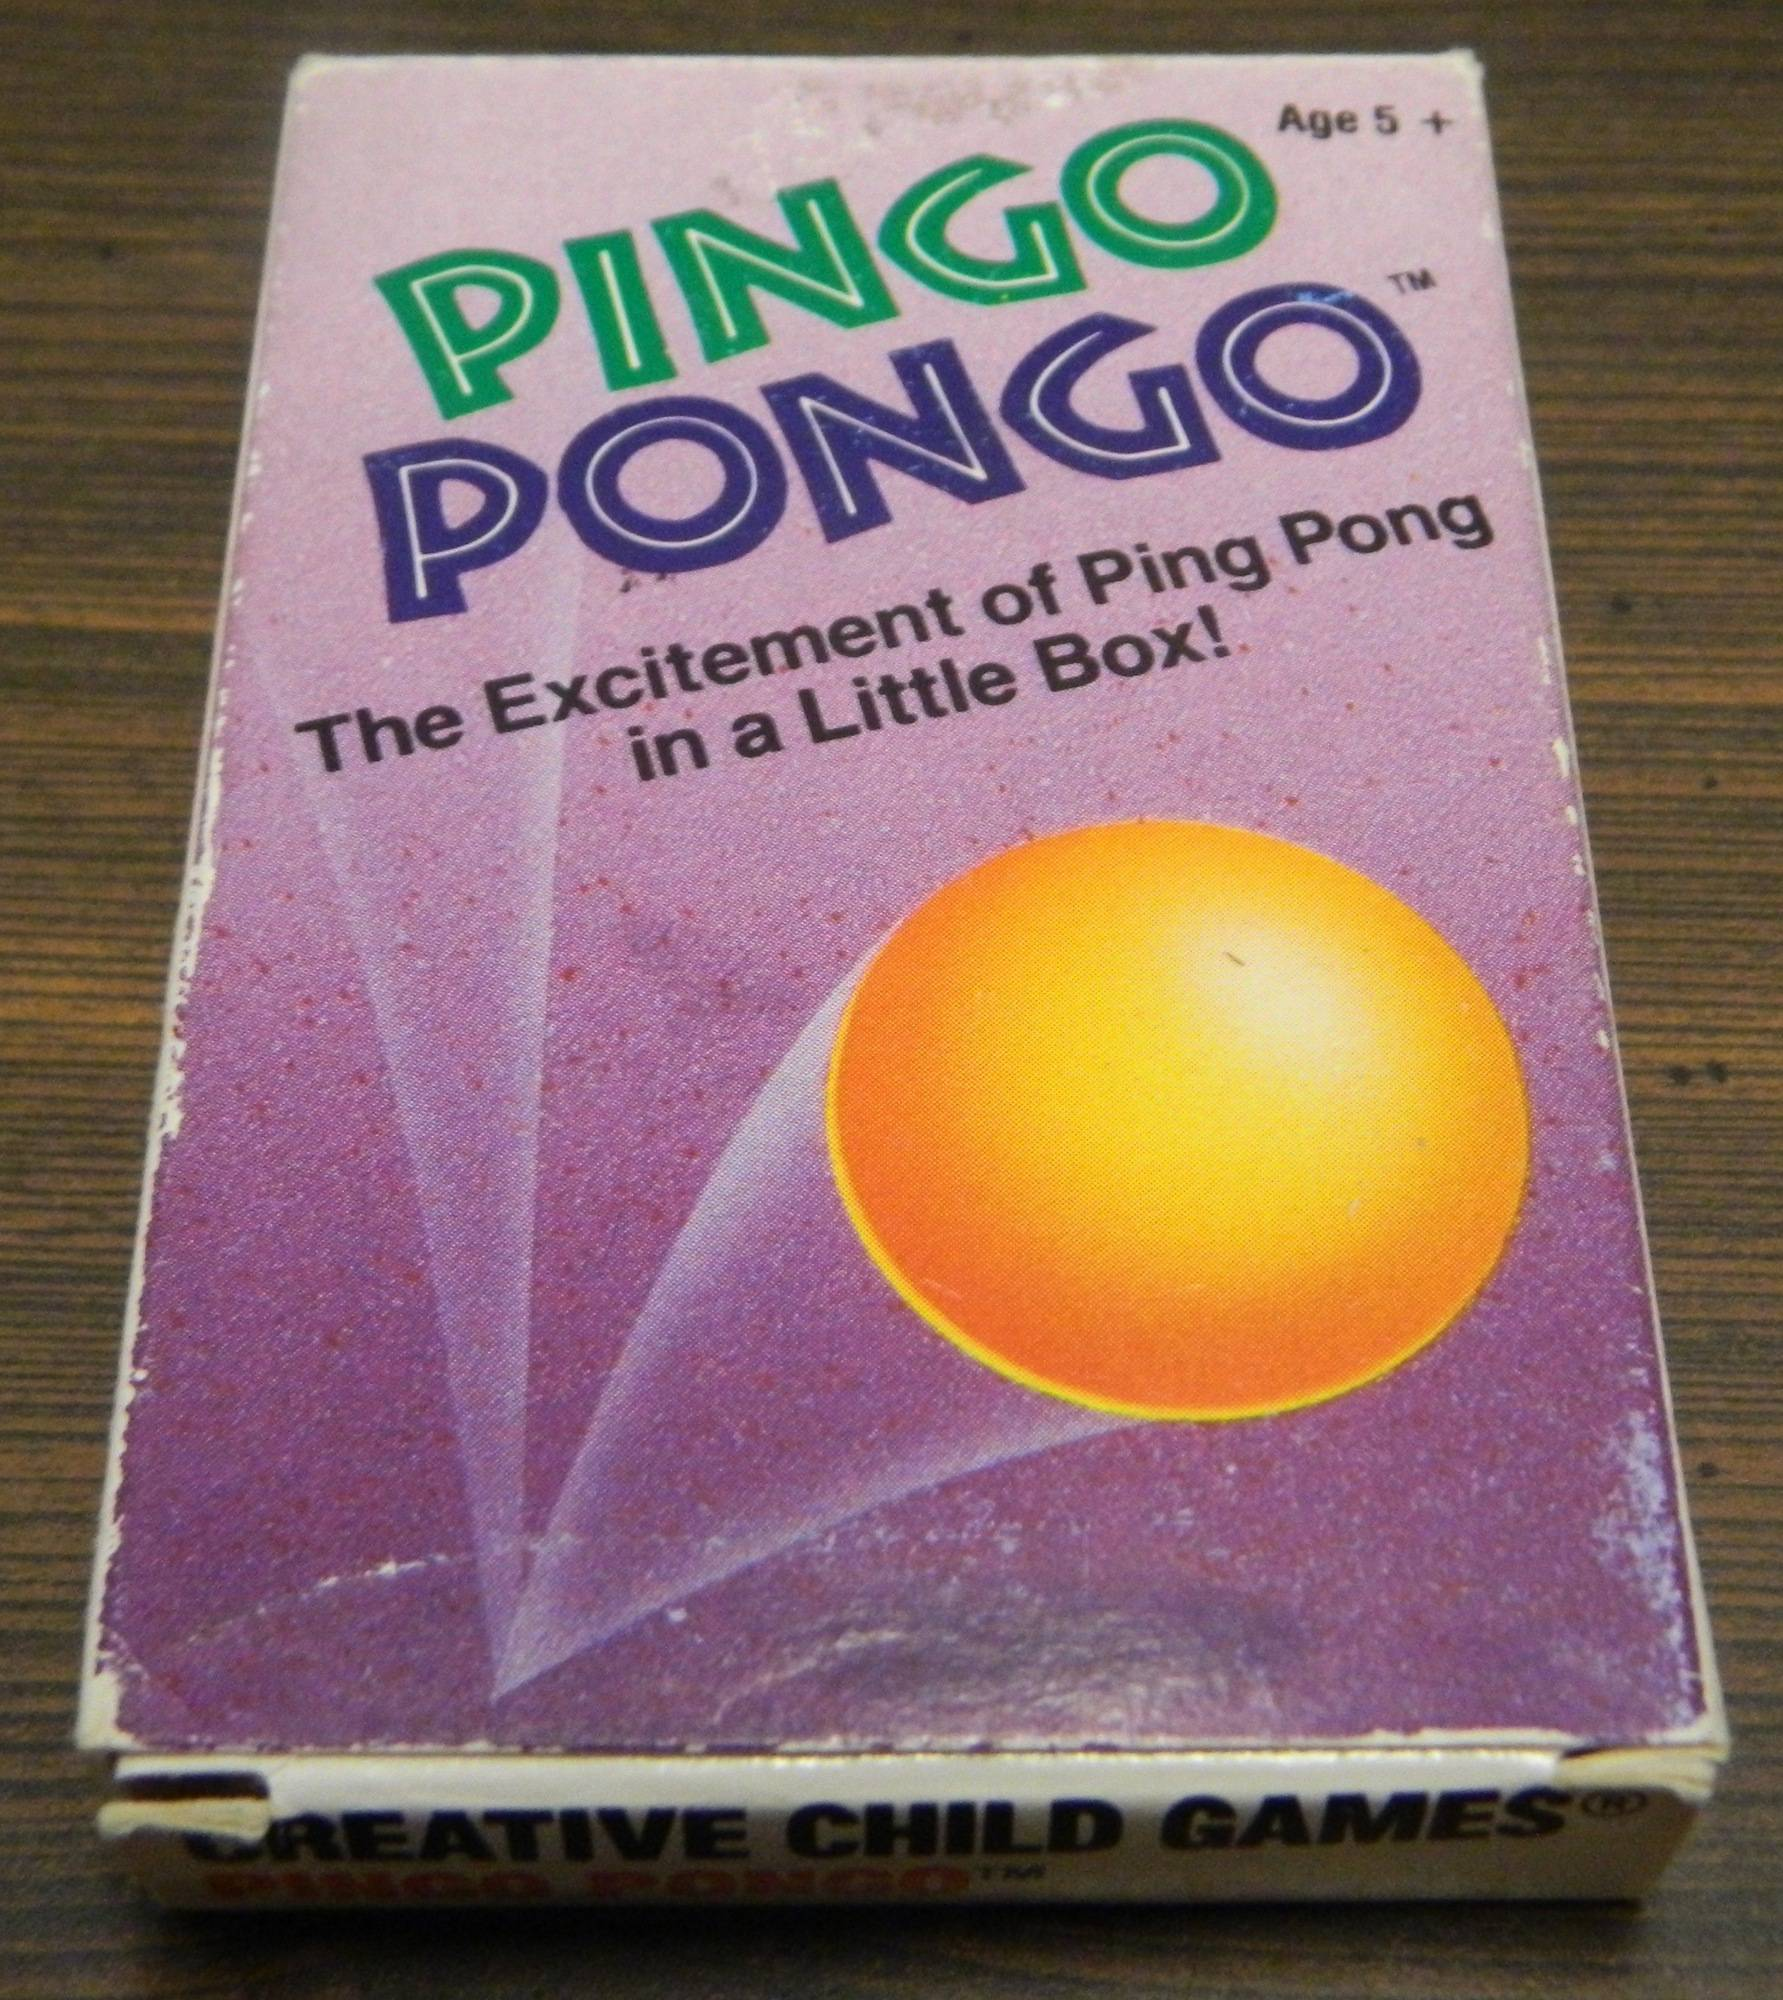 Box for Pingo Pongo